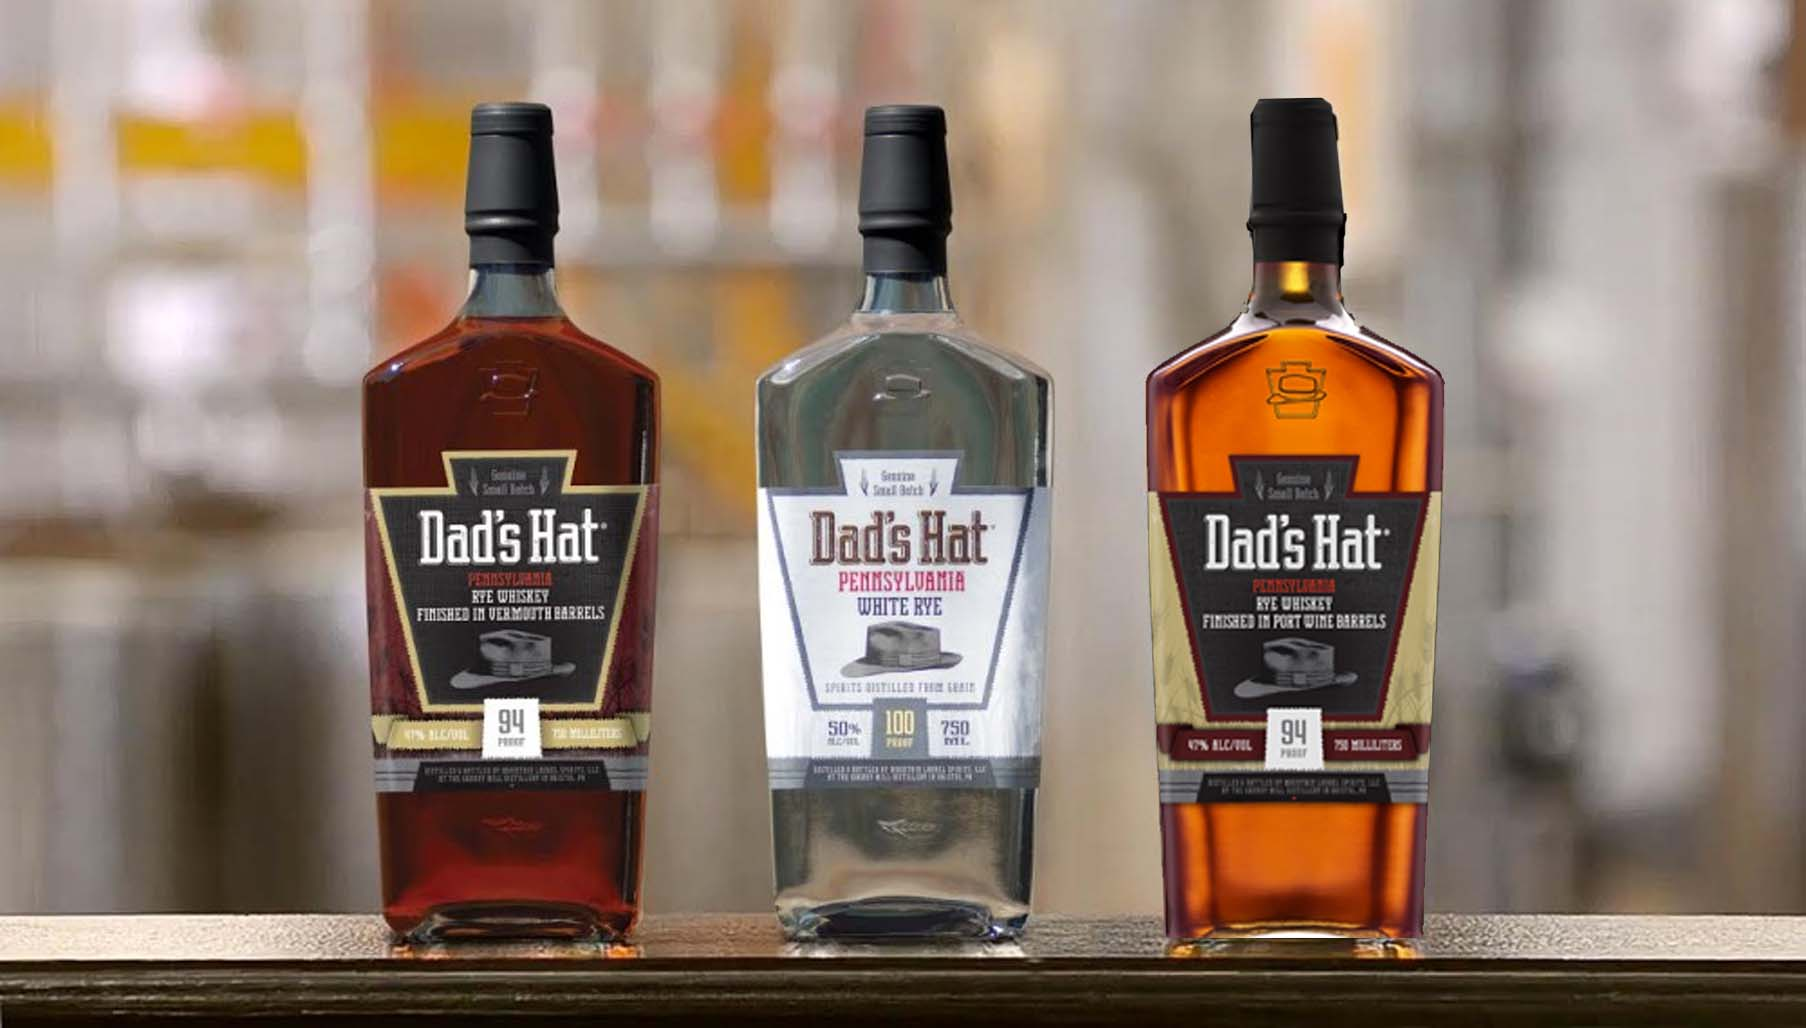 Dad's Hat Dad's Hat Rye finished in vermouth barrels, Dad's Hat Pennsylvania White Rye and Dad's Hat rye finished in port barrels. (Photo: Dad's Hat)